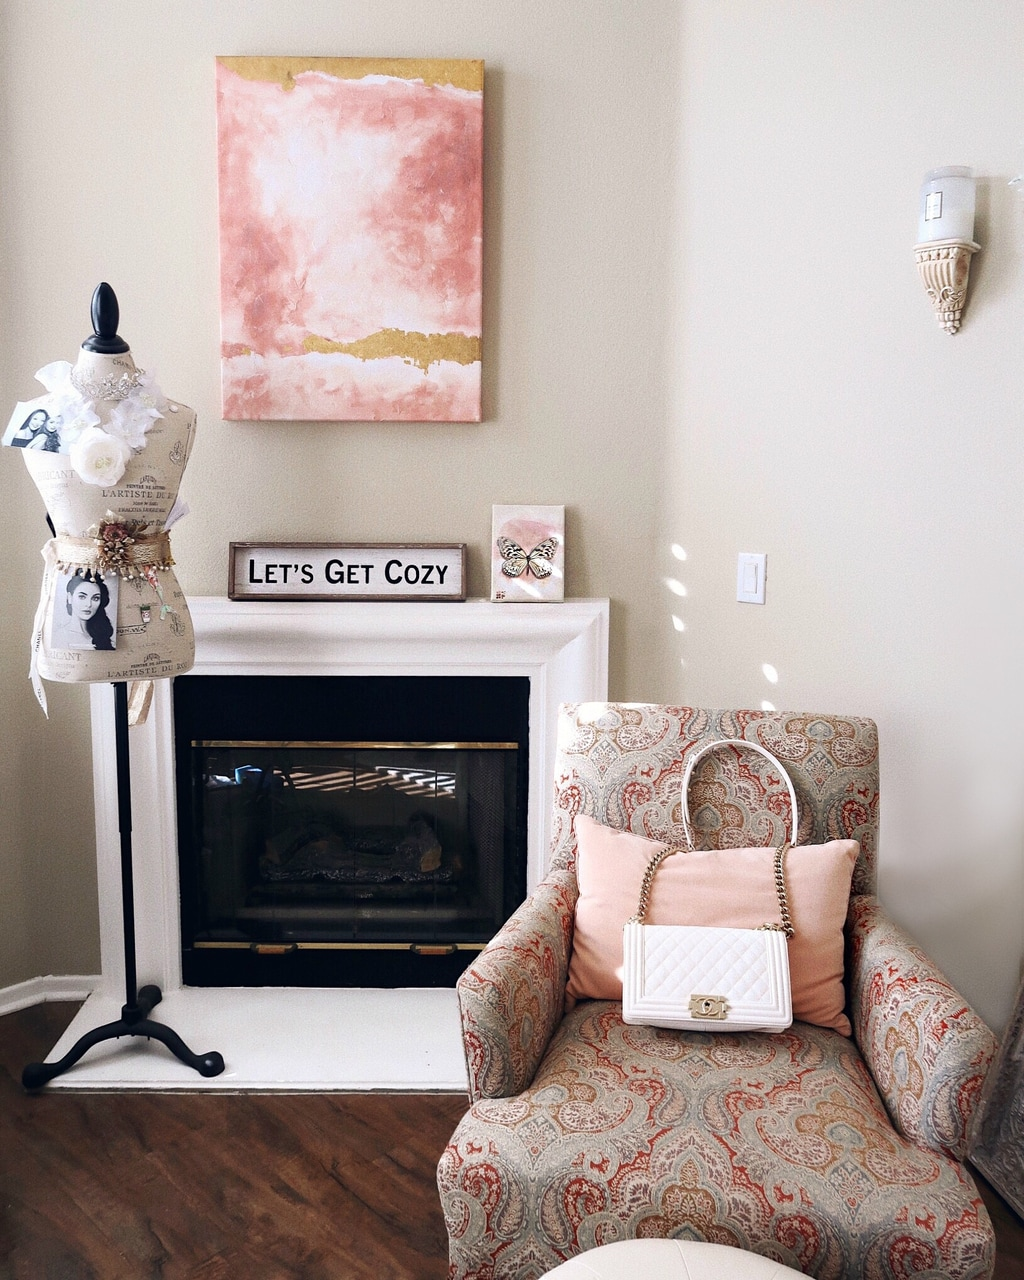 Girly Cozy Decor Shared By Jackie Wyers On We Heart It